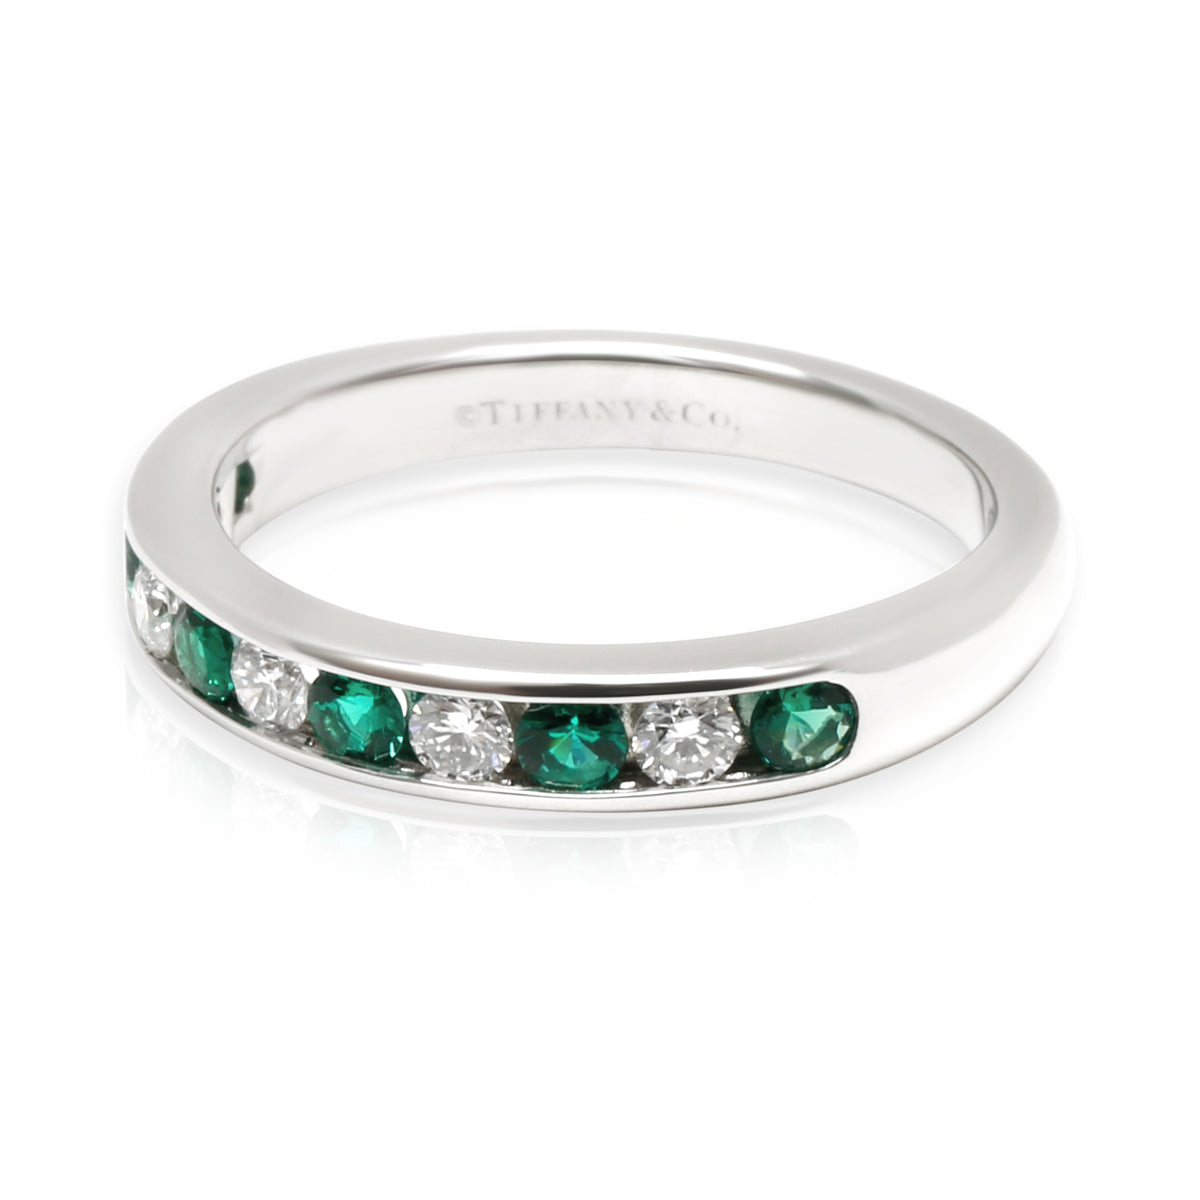 Tiffany & Co. Channel Set Diamond & Emerald Band in Platinum 0.15 CTW